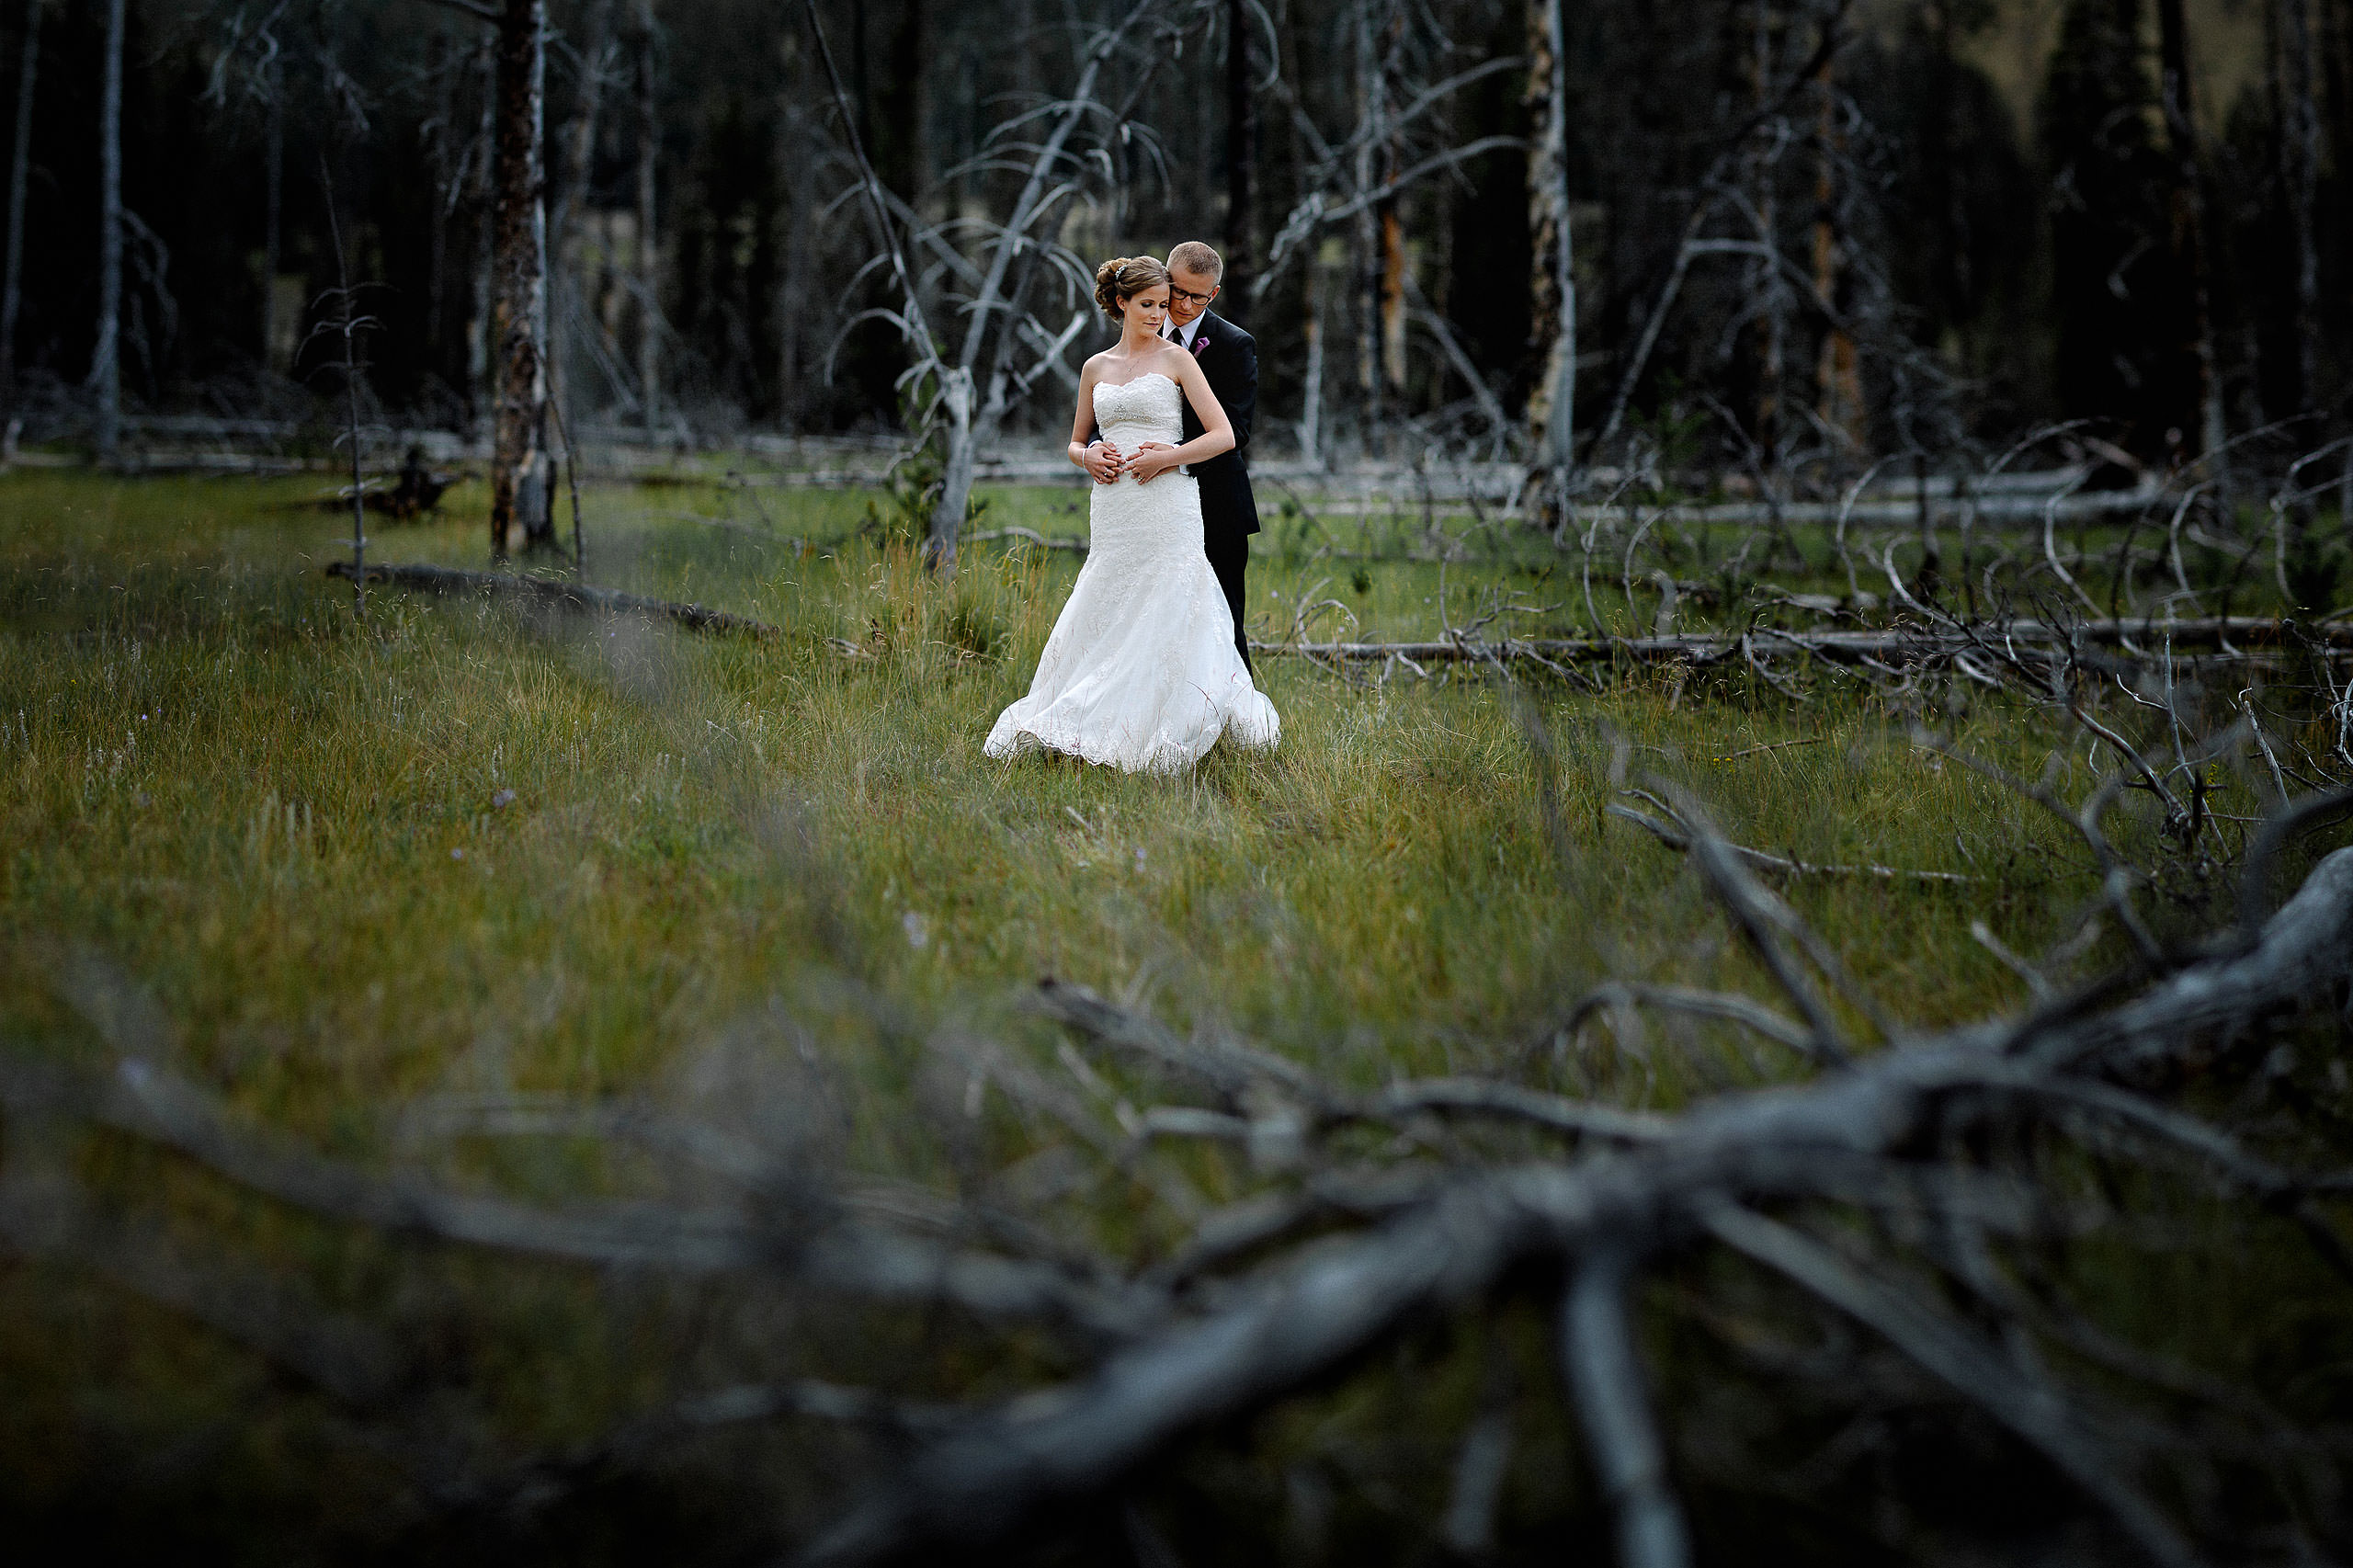 bride and groom embracing in a forest with a fallen tree in the foreground